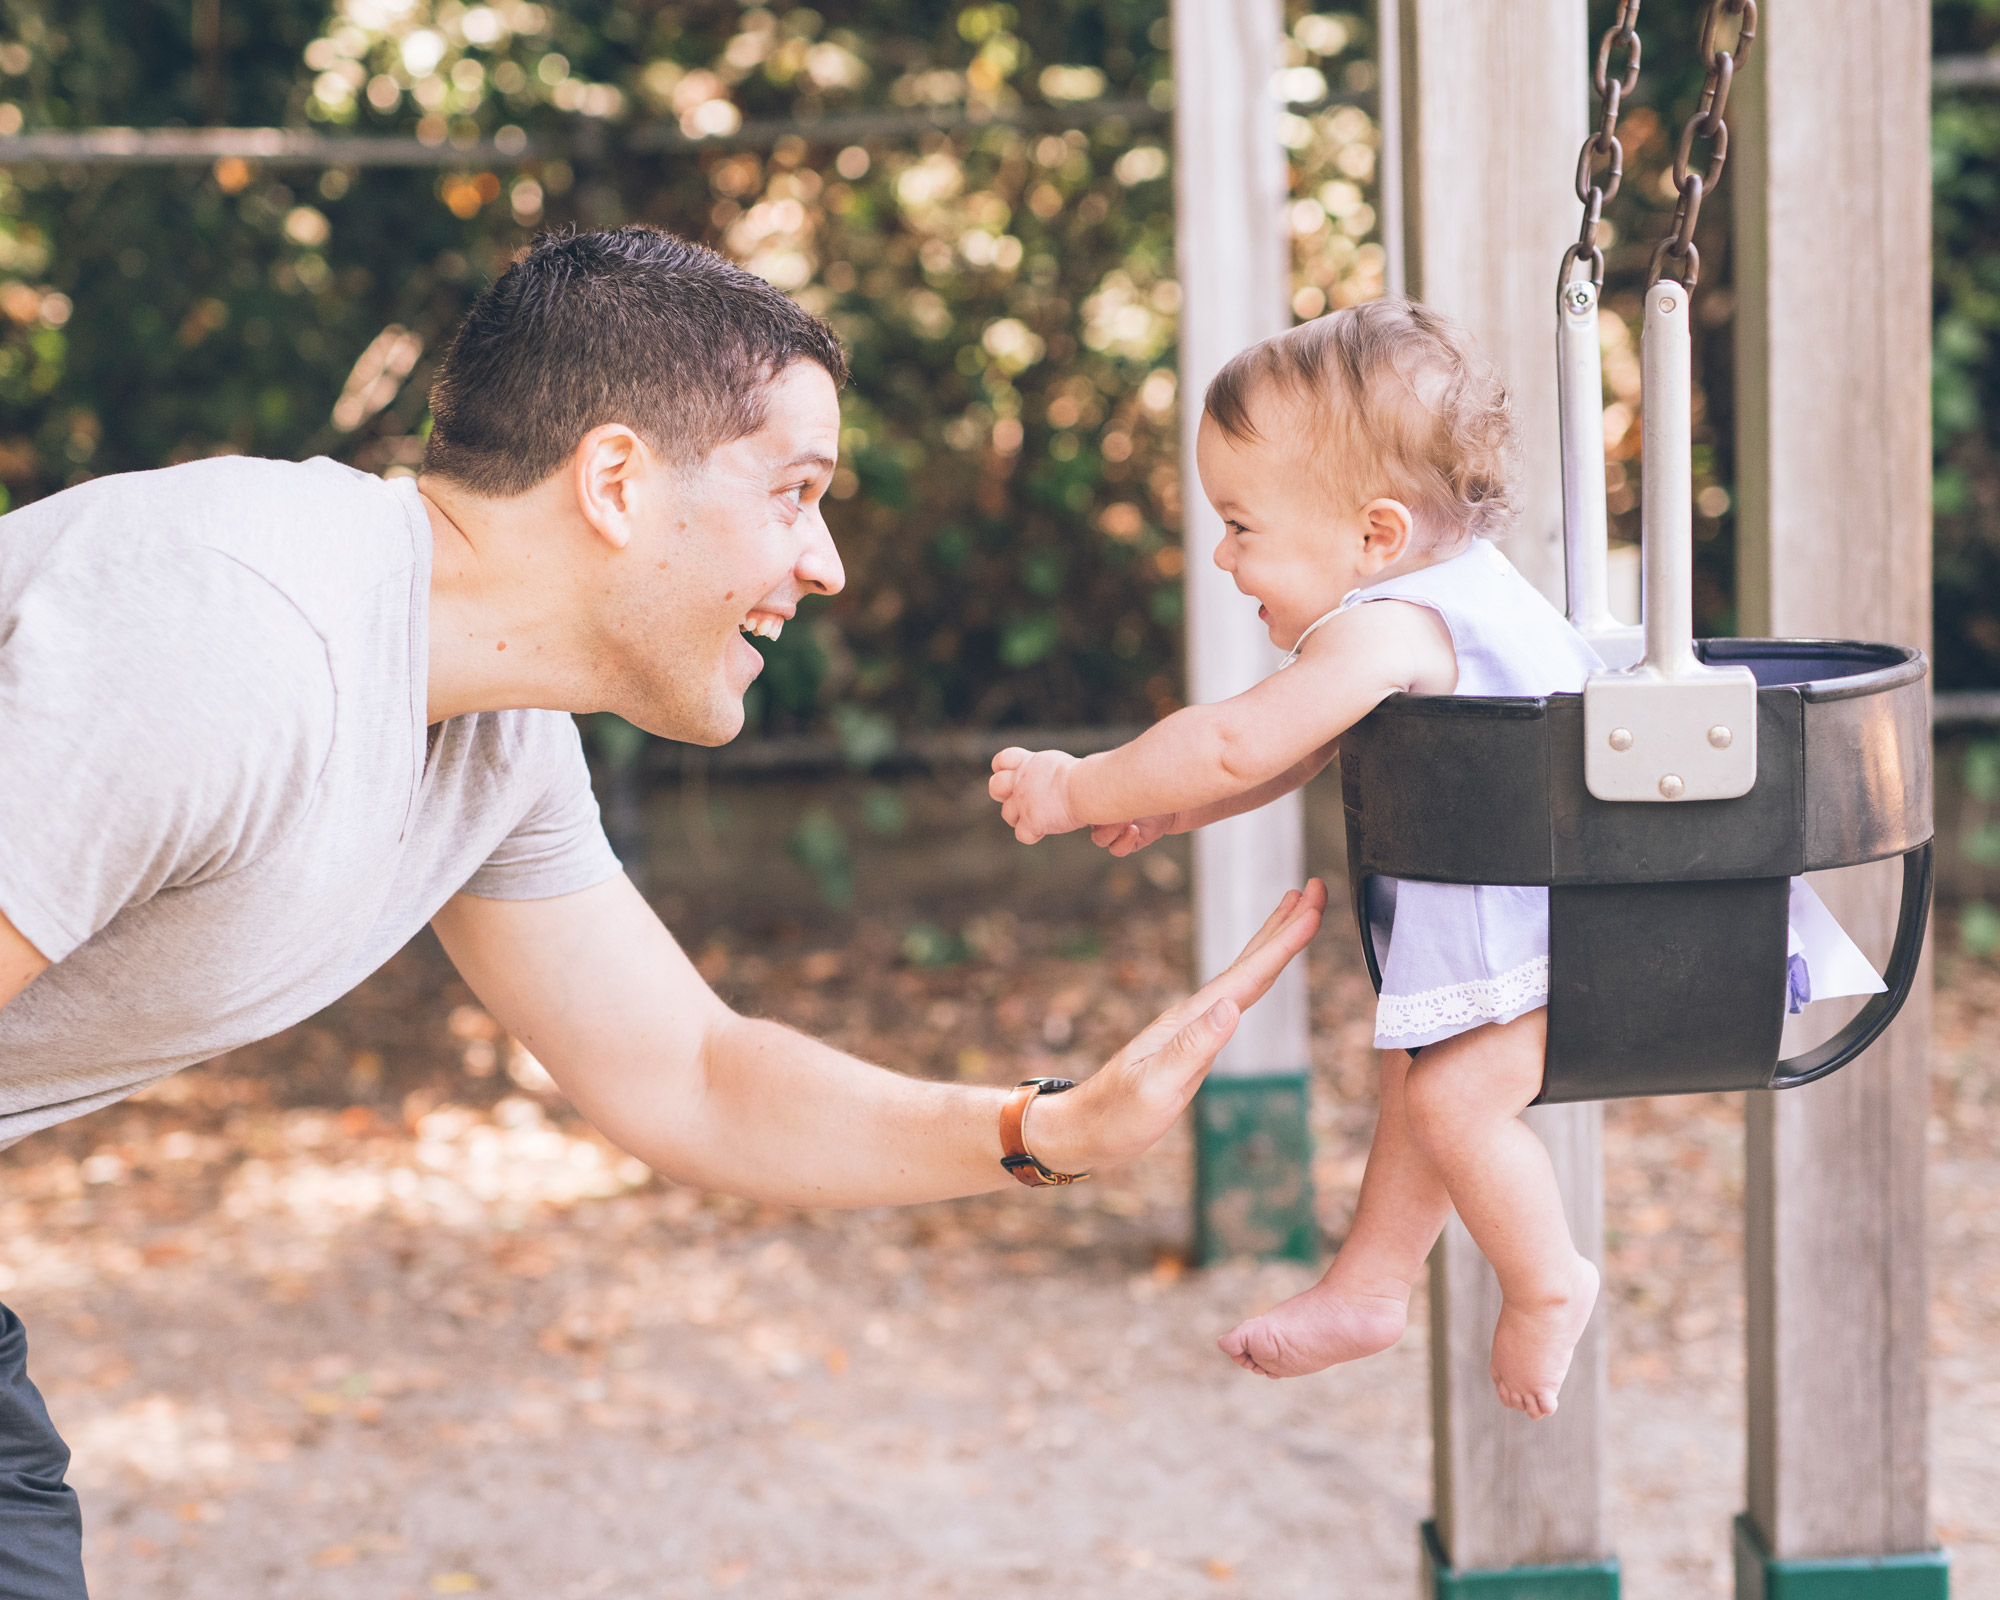 father-playing-with-his-daughter-in-the-swing.jpg